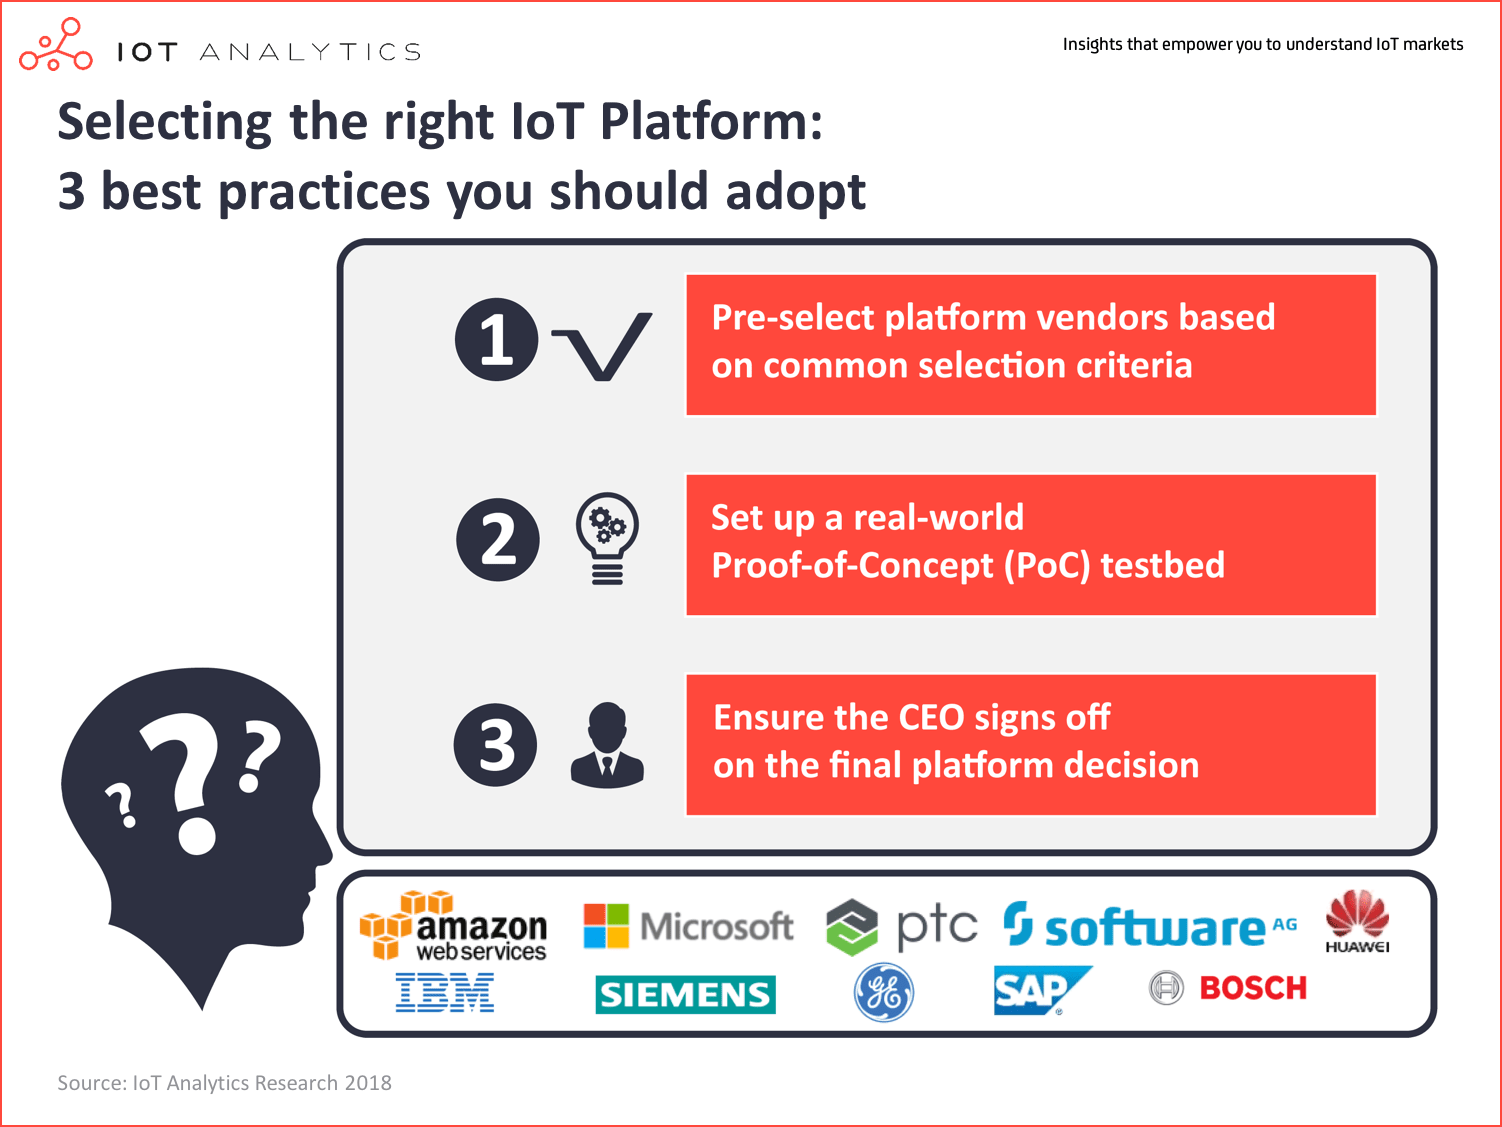 6fdc1de4e selecting the right iot platform - 3 best pratices you should adopt